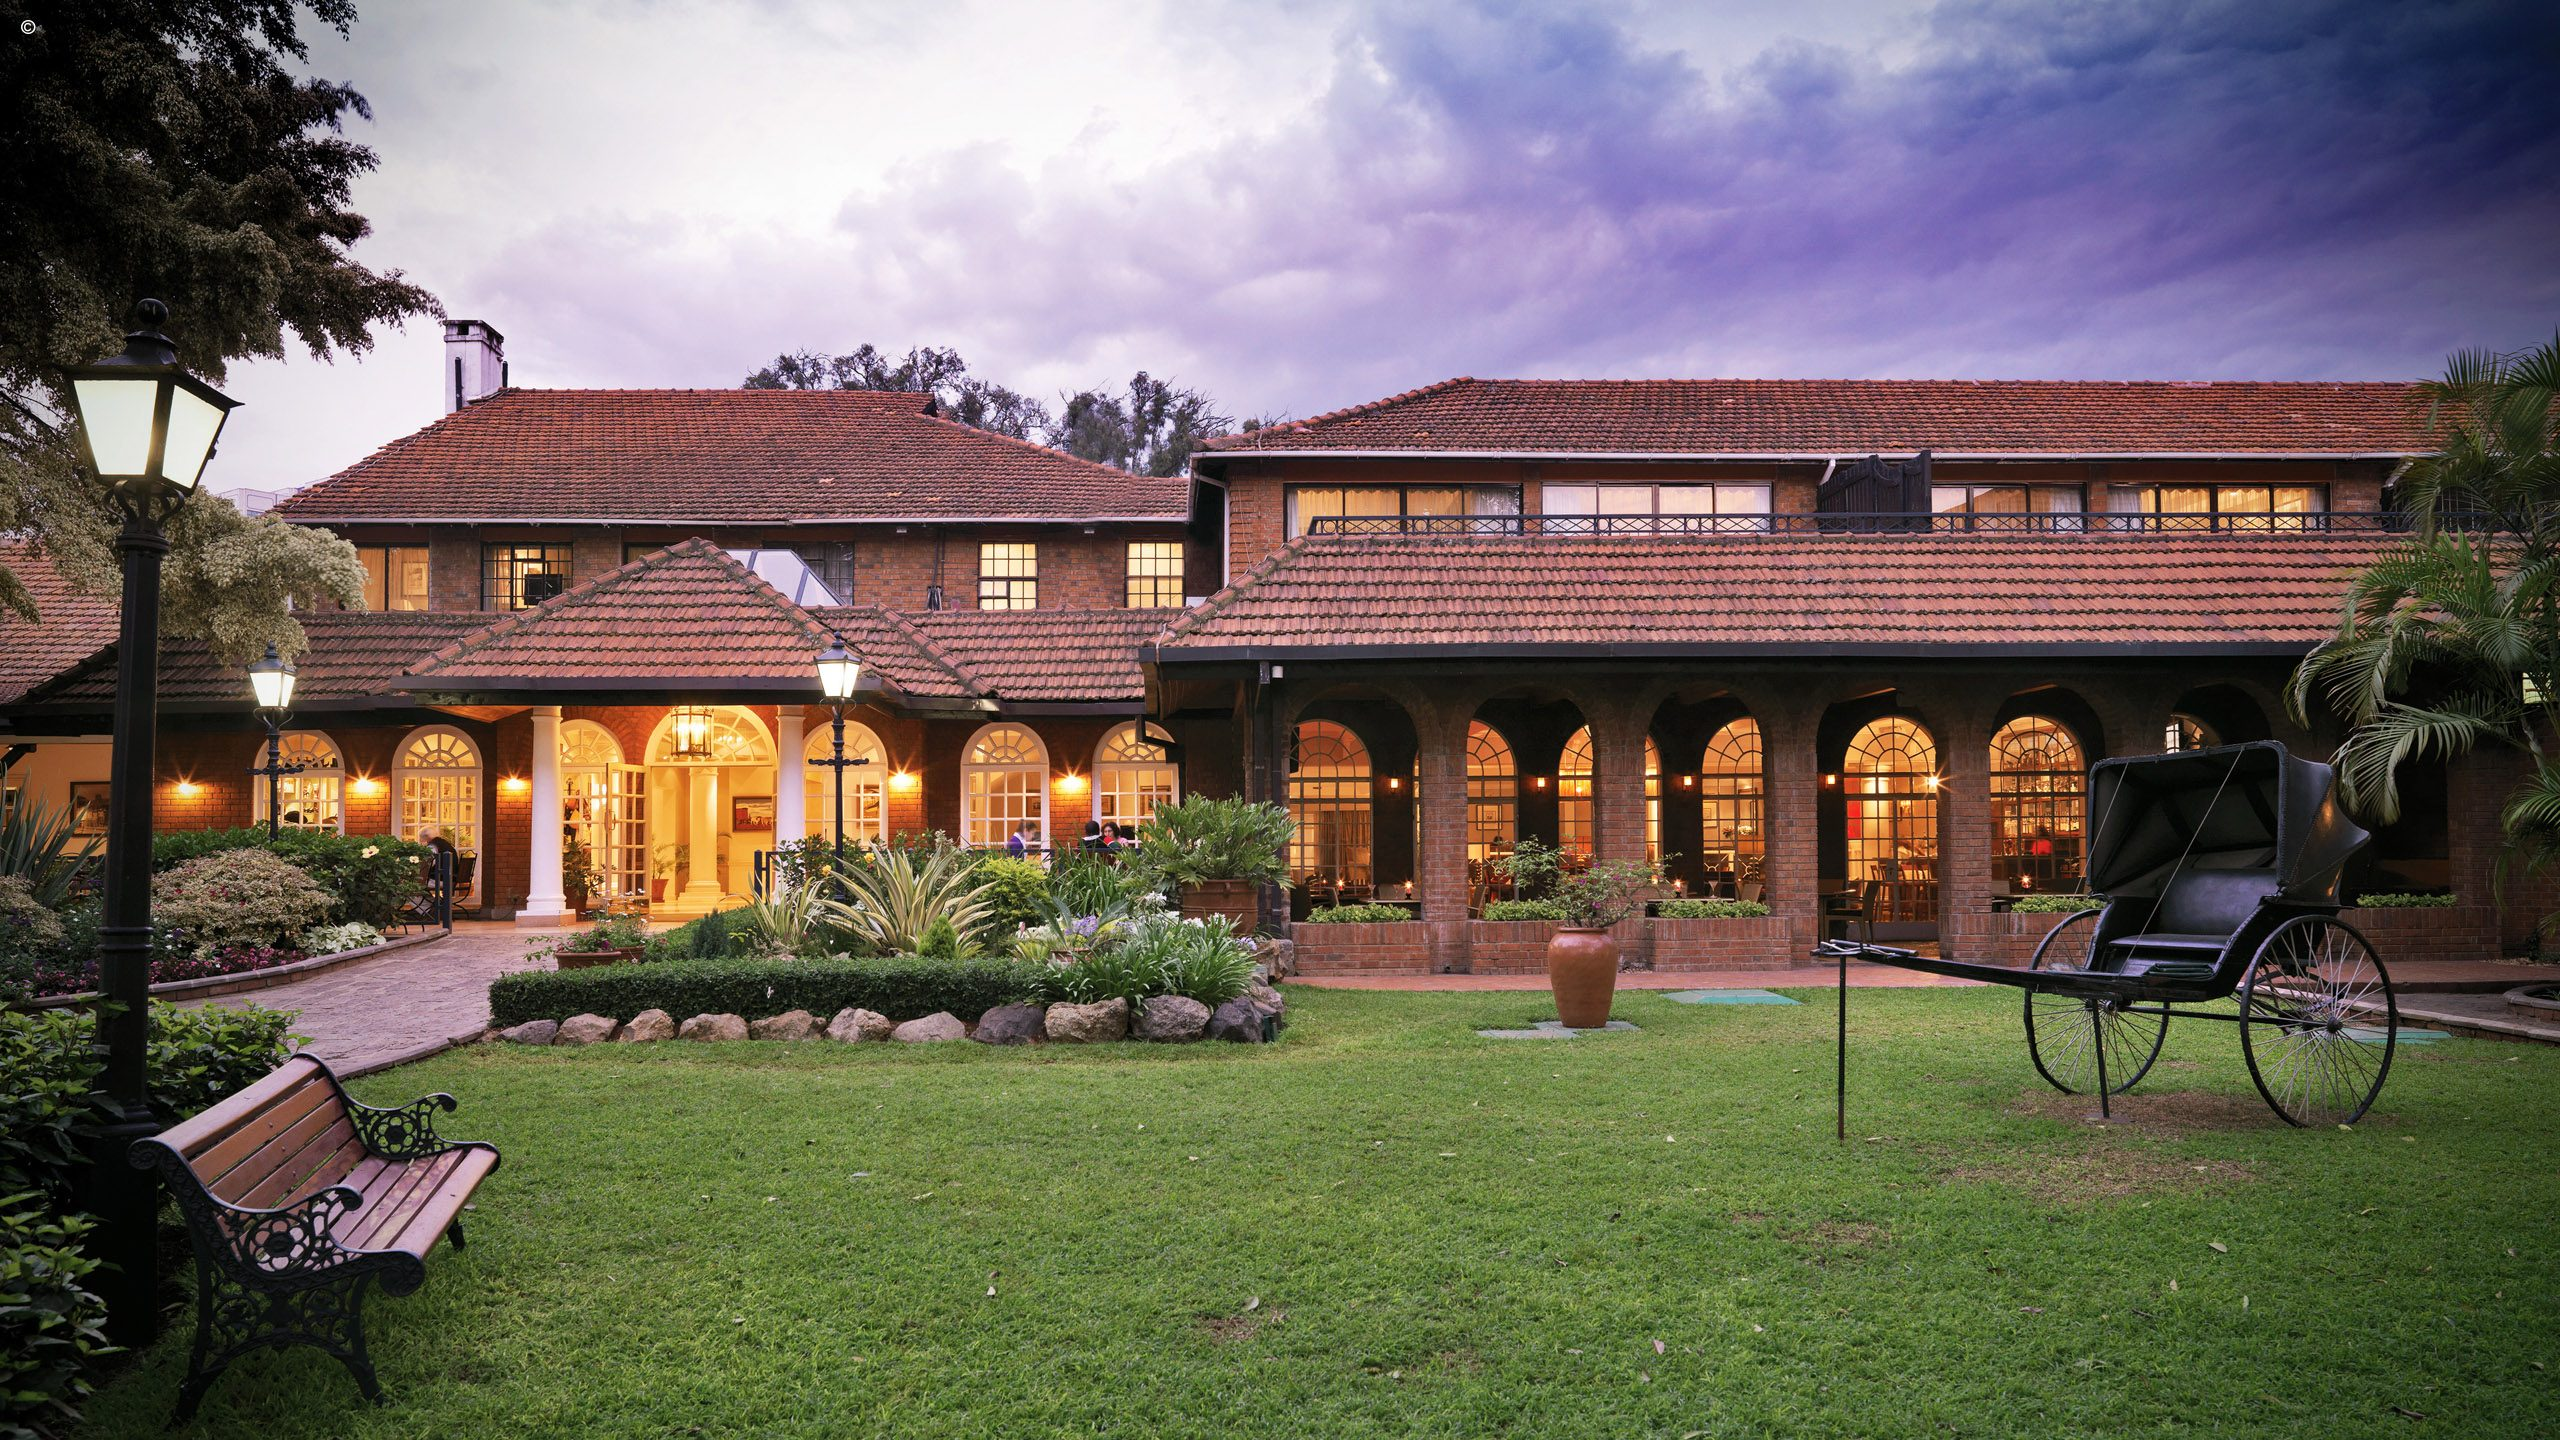 Fairmont the Norfolk in Nairobi. The hotel has been acquired by the Chaudhary Group.